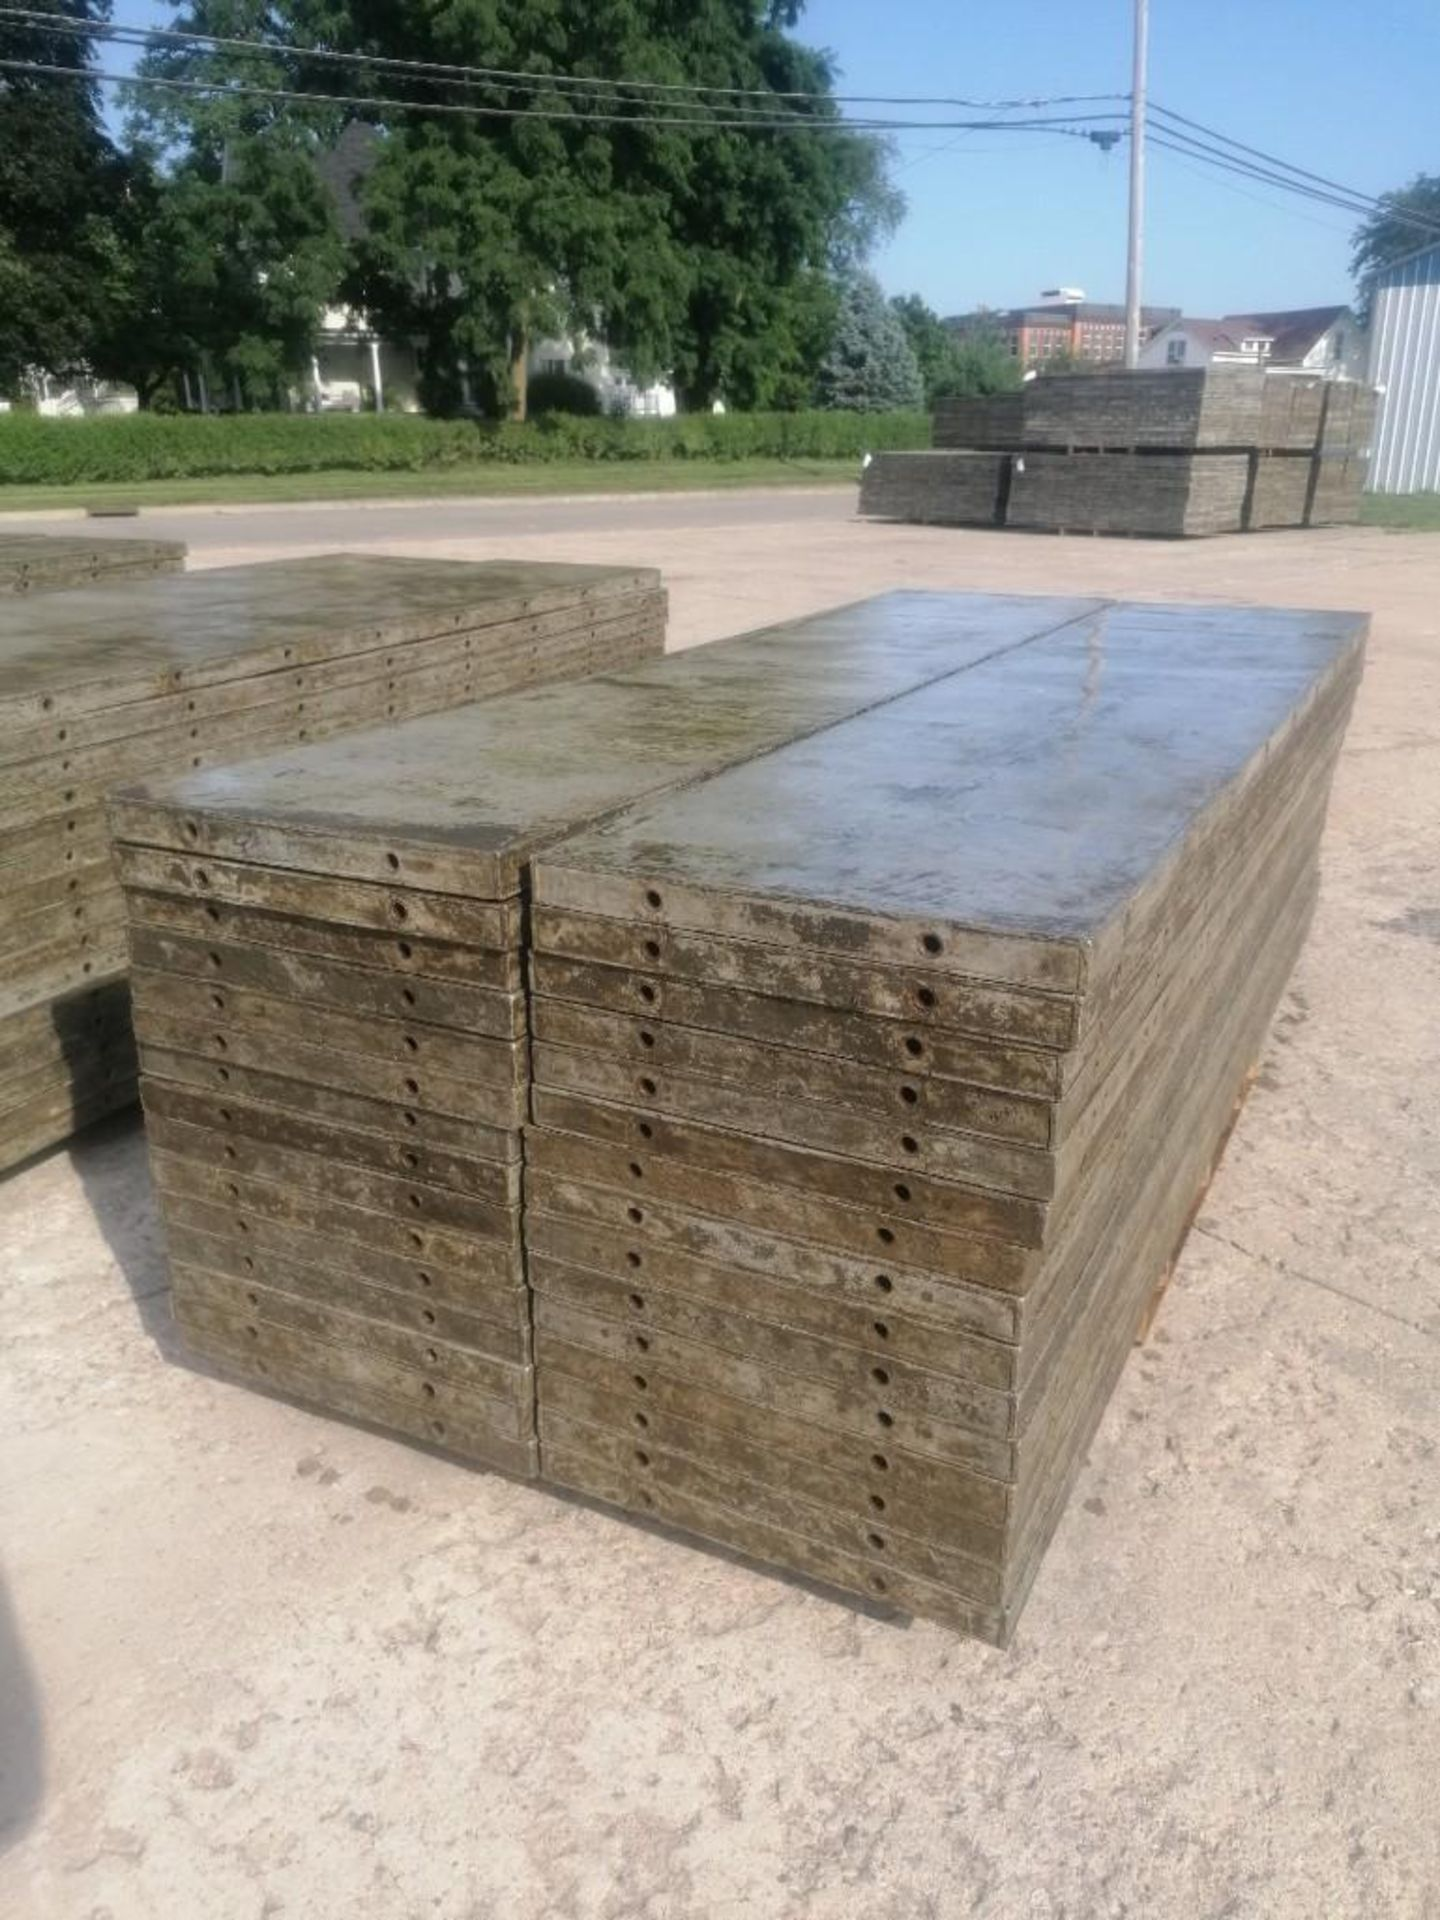 Lot 133 - (30) 2' x 9' Wall-Ties Aluminum Concrete Forms, Laydowns, Smooth 6-12 Hole Pattern. Located at 301 E